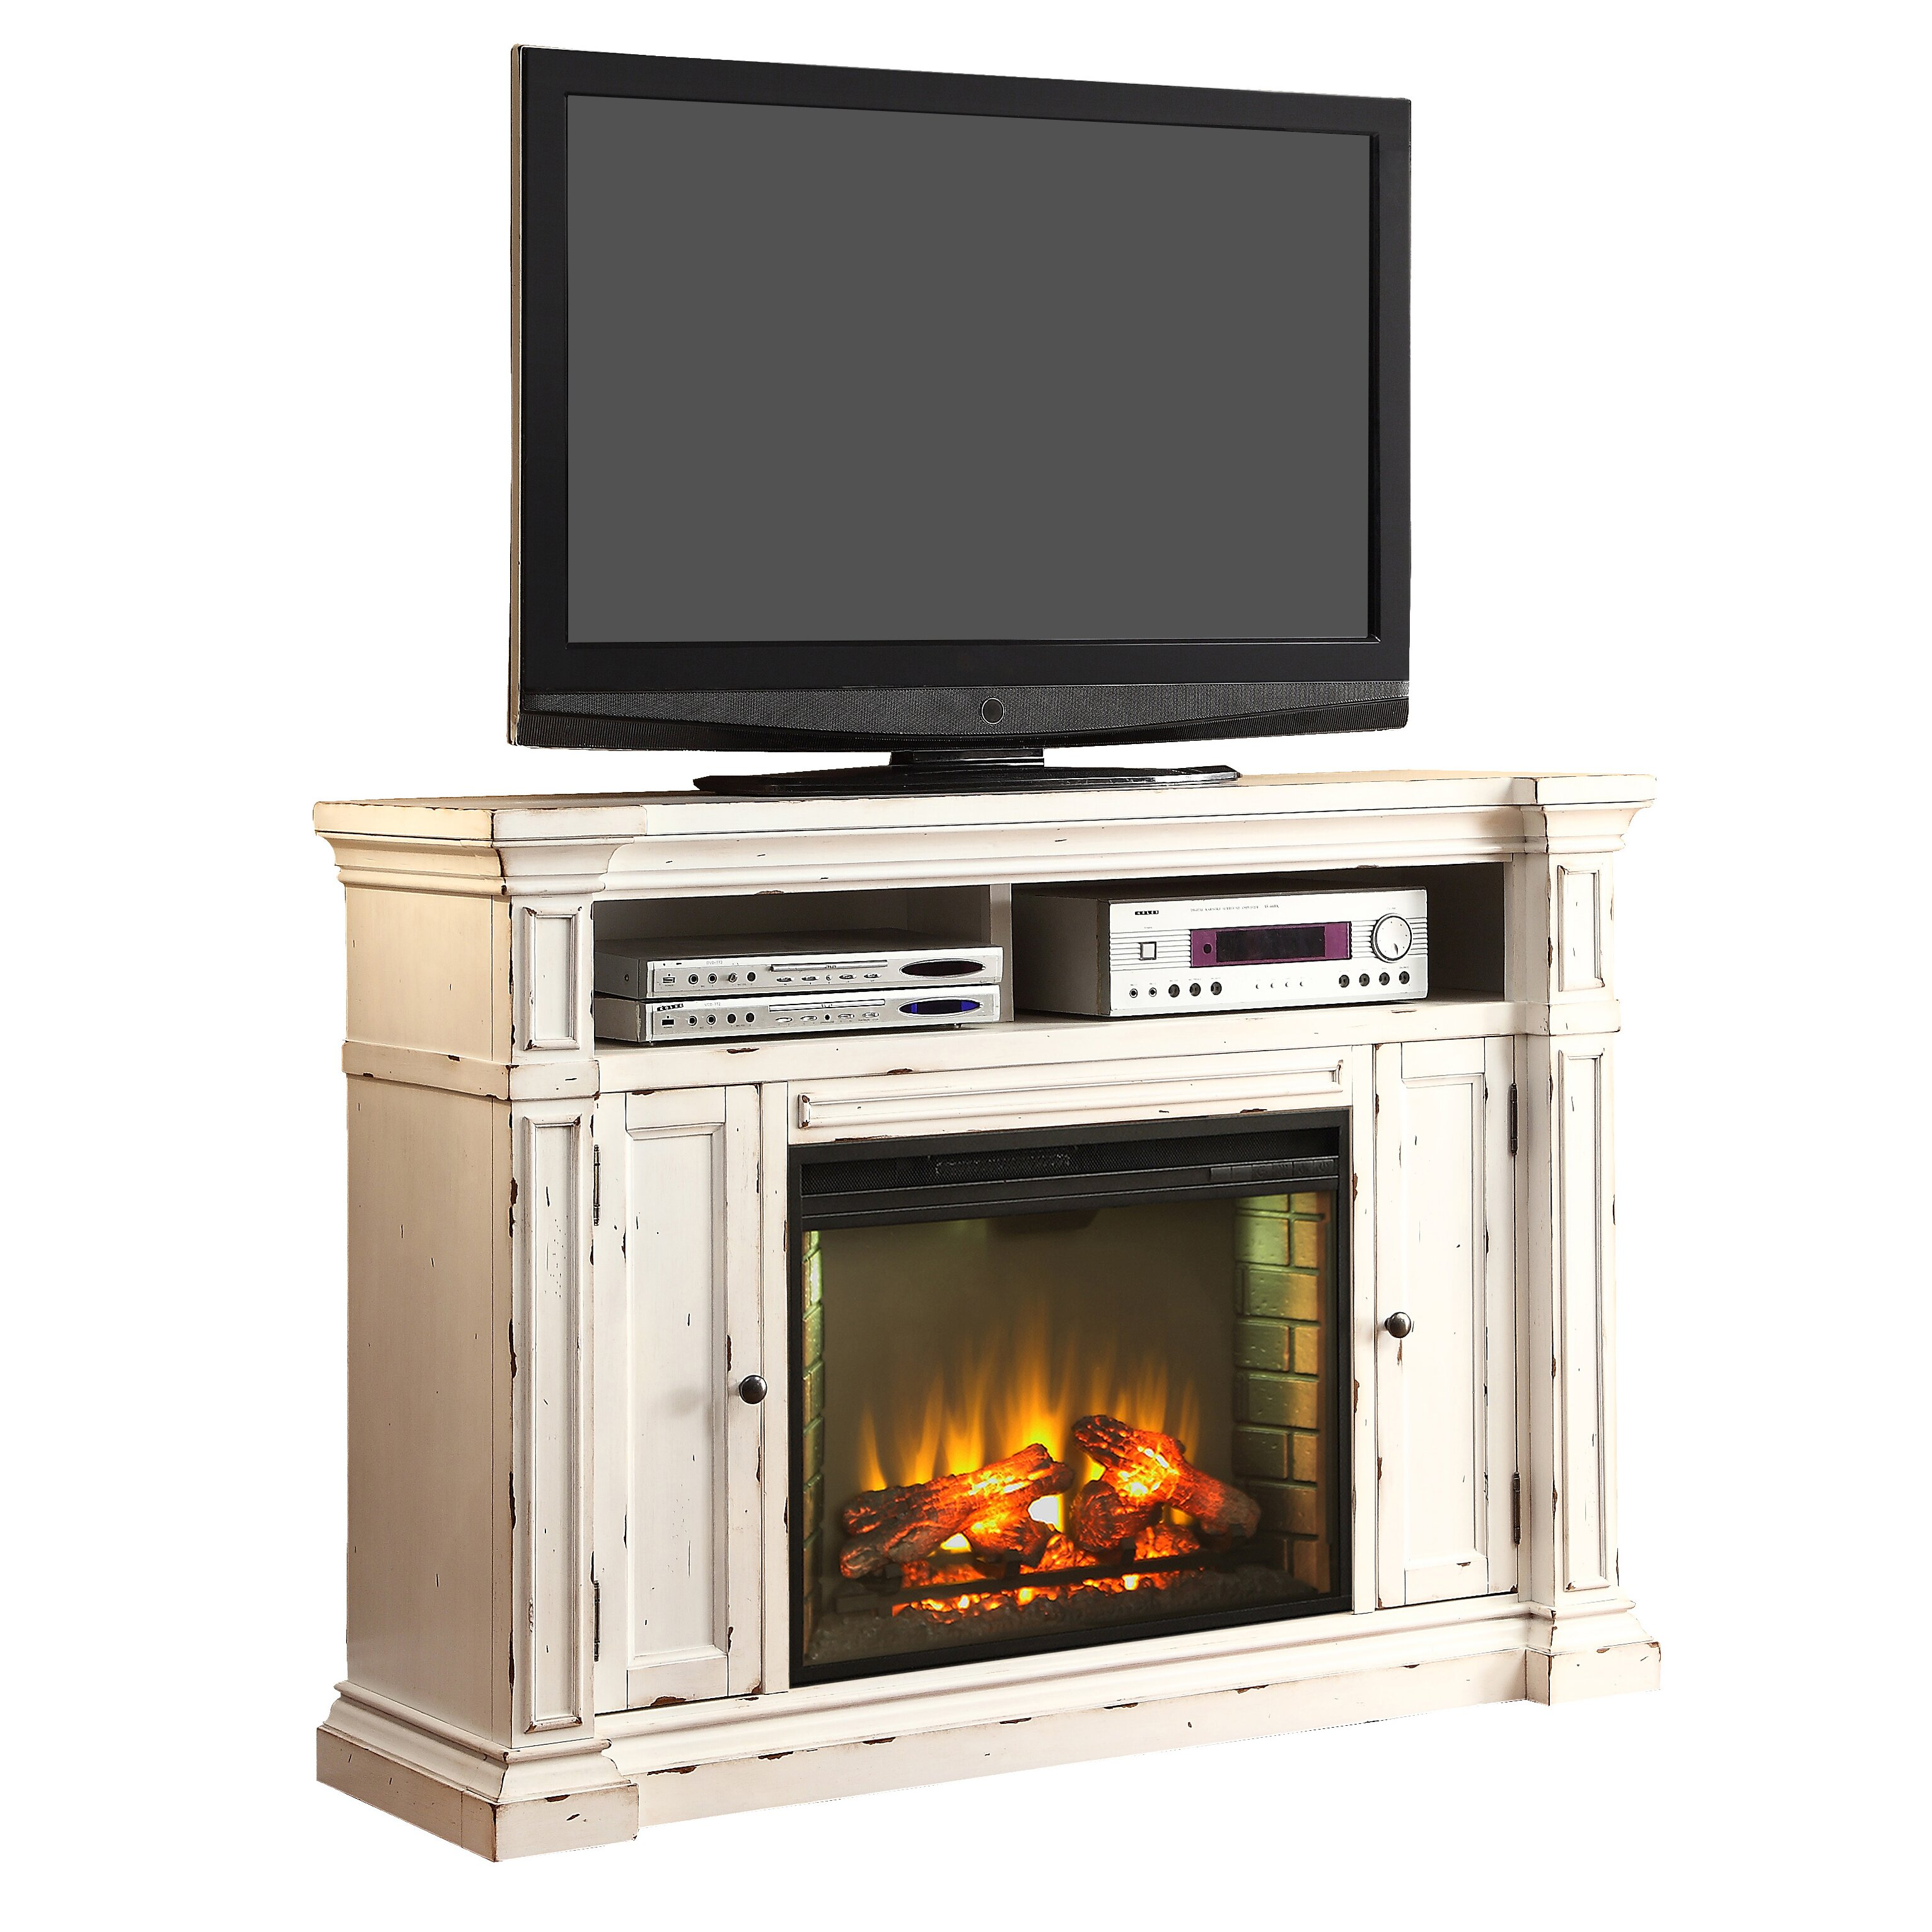 White tv stand with electric fireplace - Legends Furniture New Castle Tv Stand With Electric Fireplace